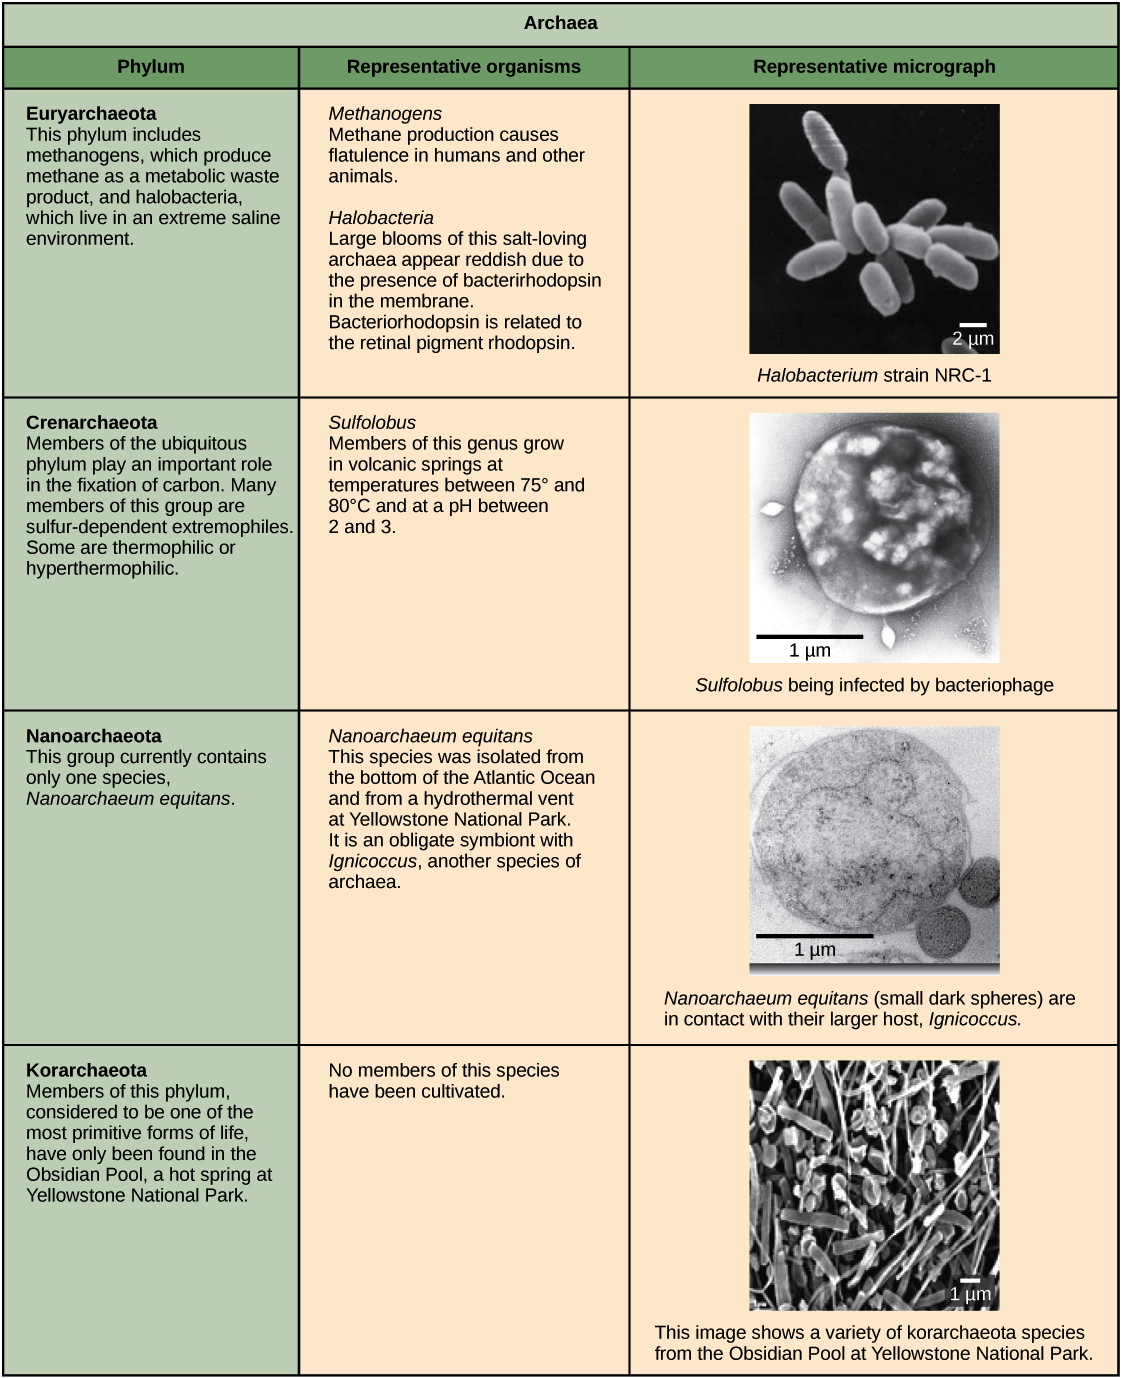 Prokaryote Classification And Diversity Article Khan Academy Knowledge Class Structure Of A Generalized Eukaryotic Cell